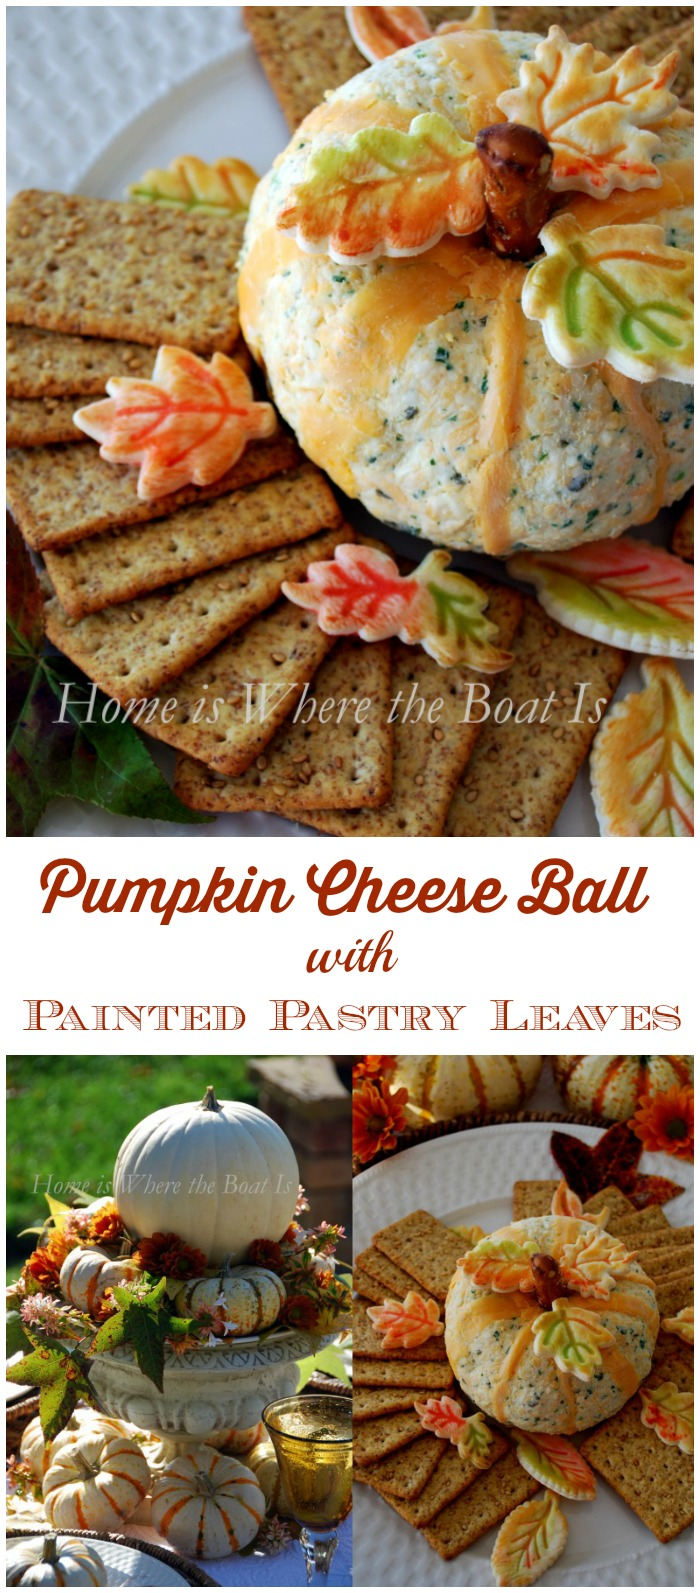 Pumpkin Cheese Ball with Painted Pastry Leaves